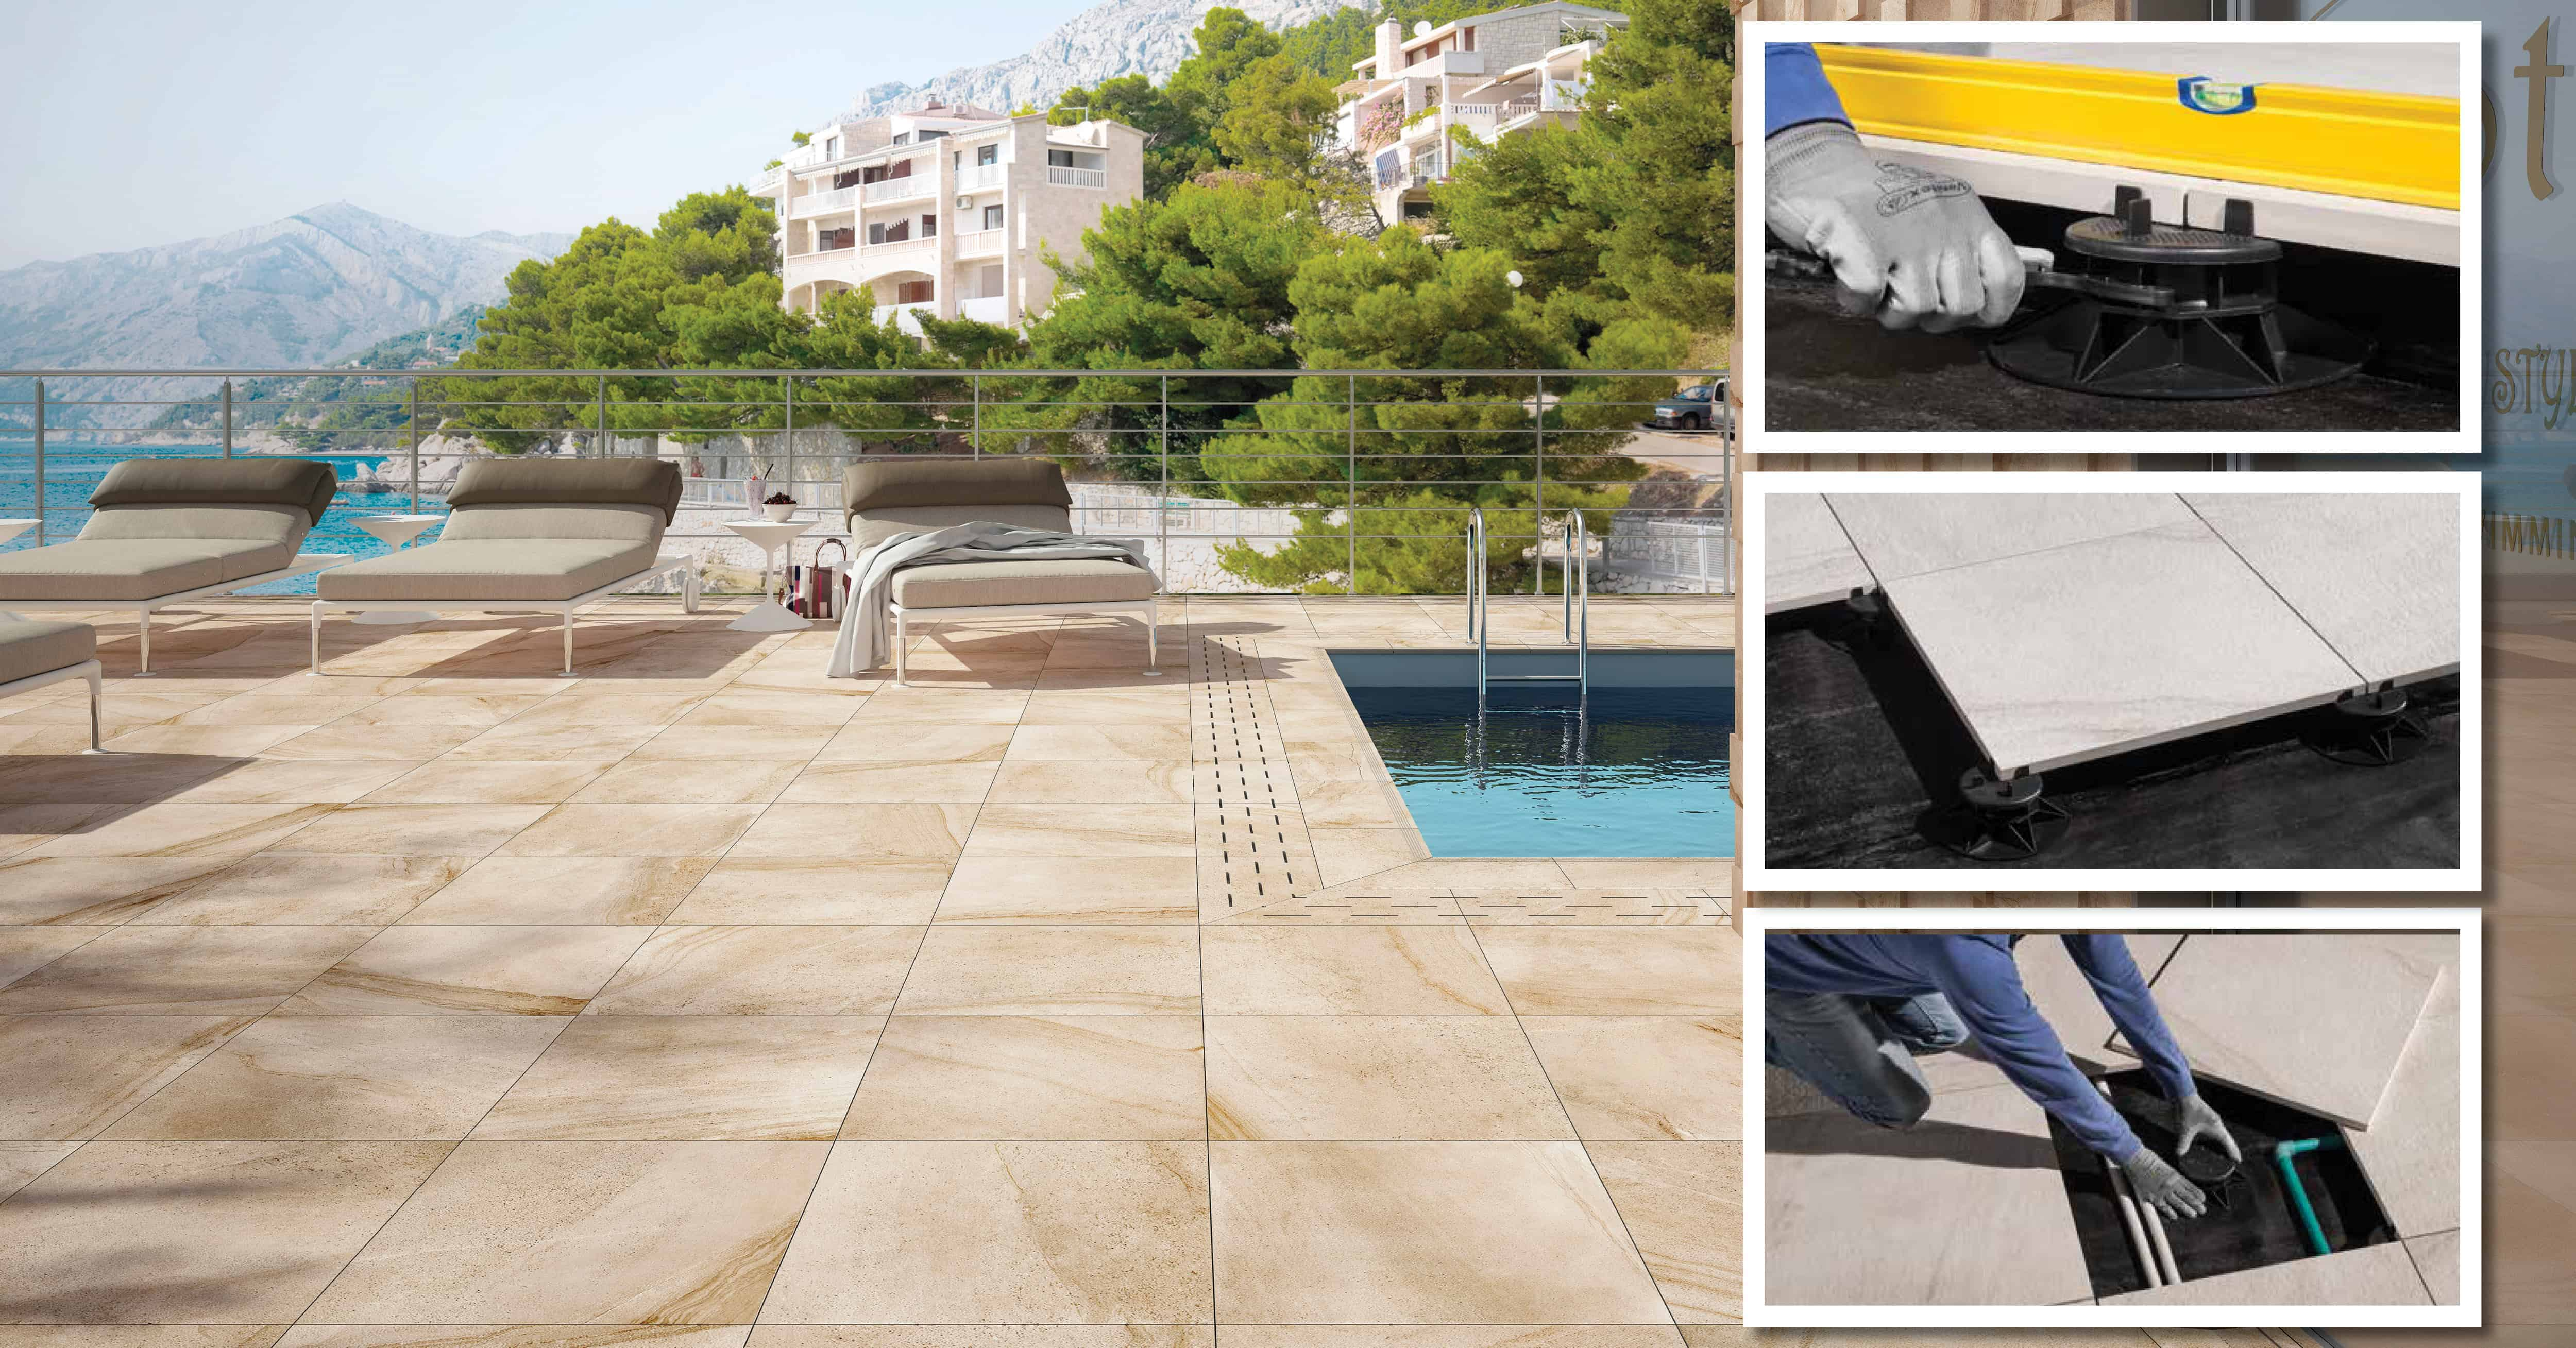 installation method for outdoor porcelain 20mm tiles using plastic pedestals rondine ceramica how to install